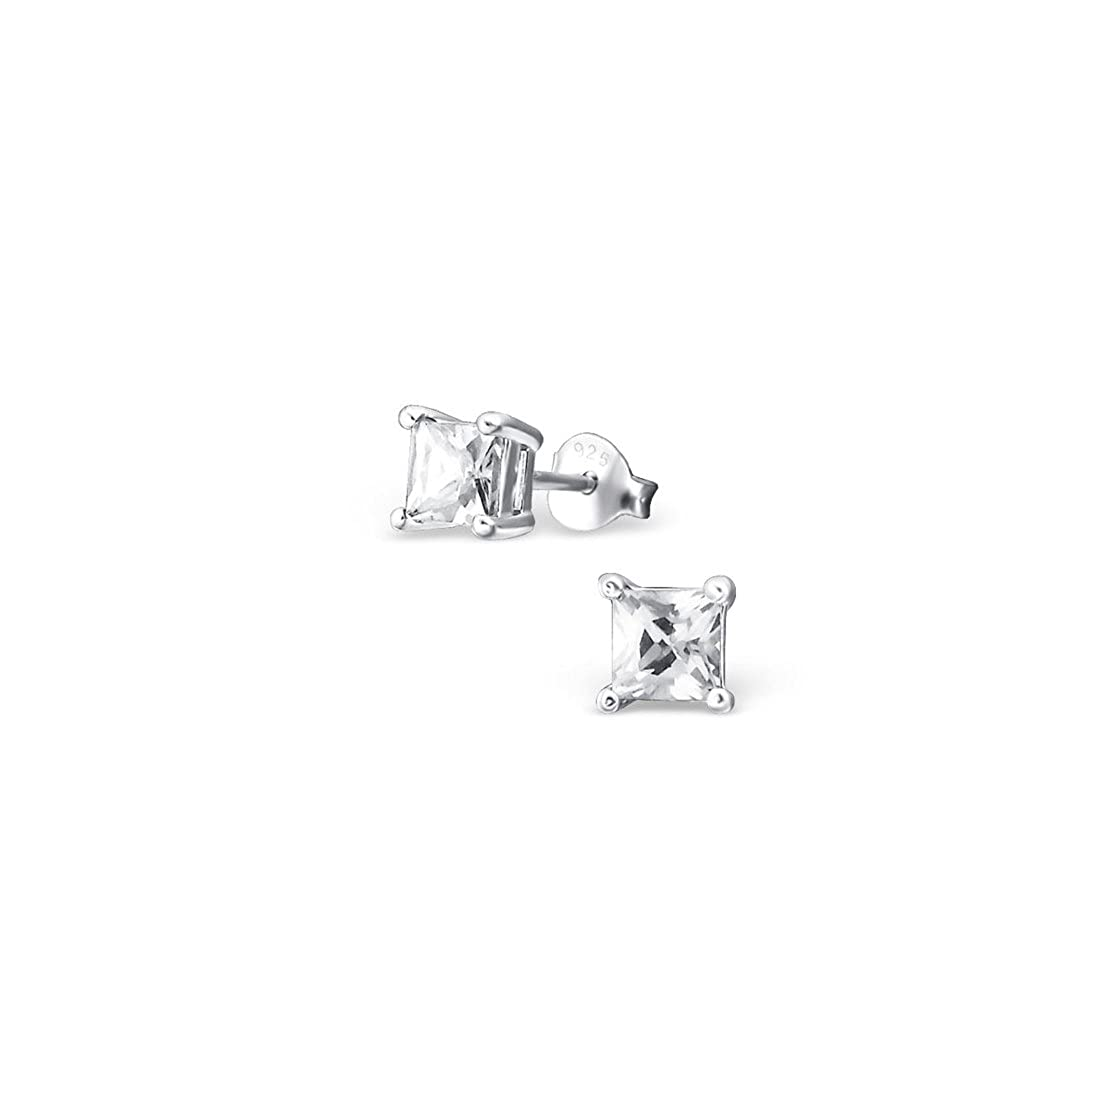 Polished And Nickel Free Square Ear Studs With Cubic Zirconia Sterling Silver 925 Liara